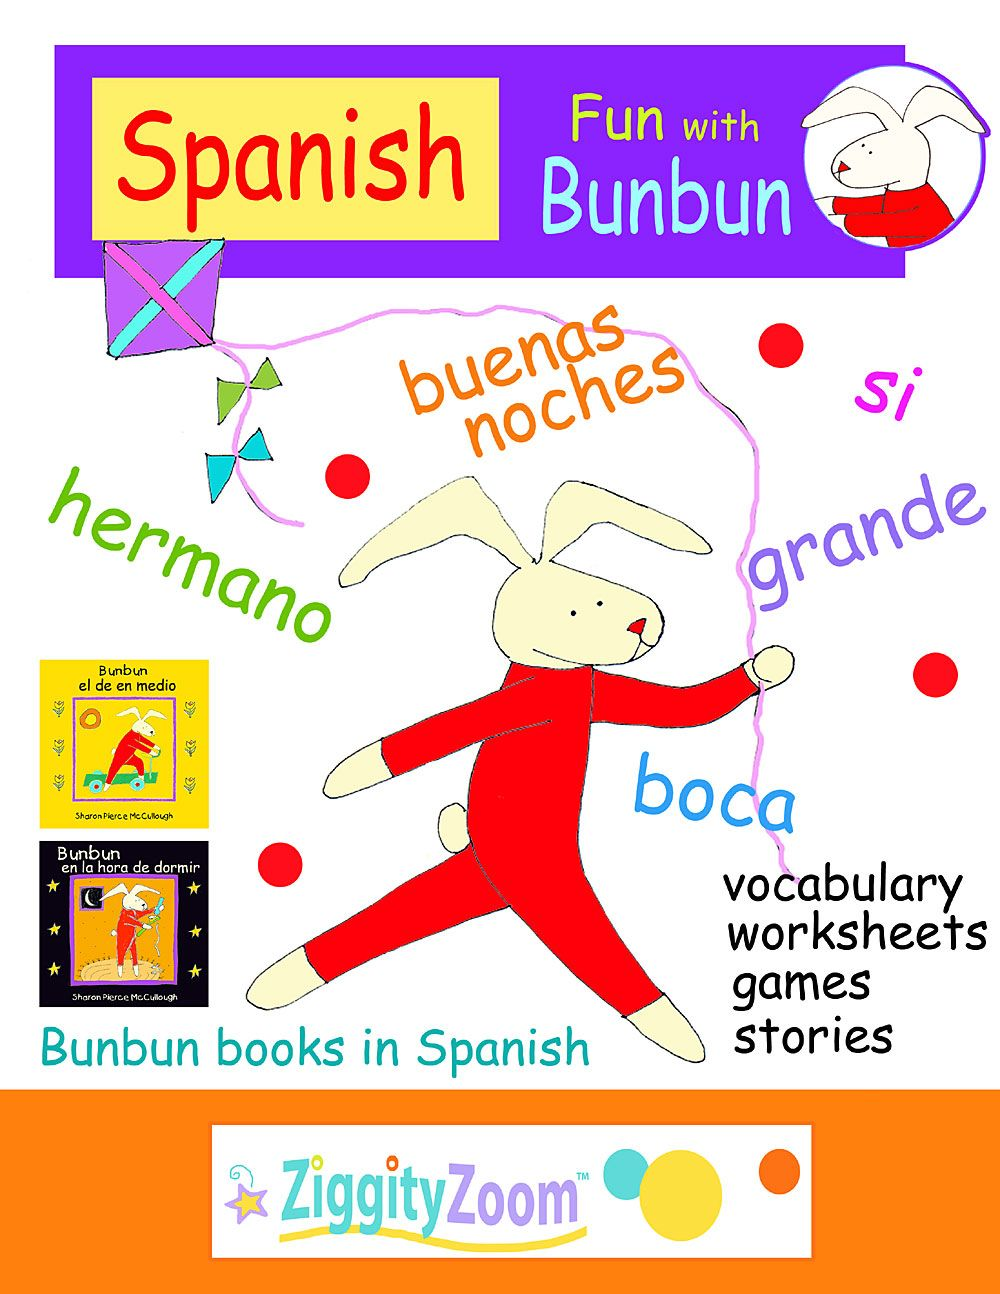 Workbooks weather expressions in spanish worksheets : Pin by Let's Learn Spanish on How To Teach Kids Spanish ...